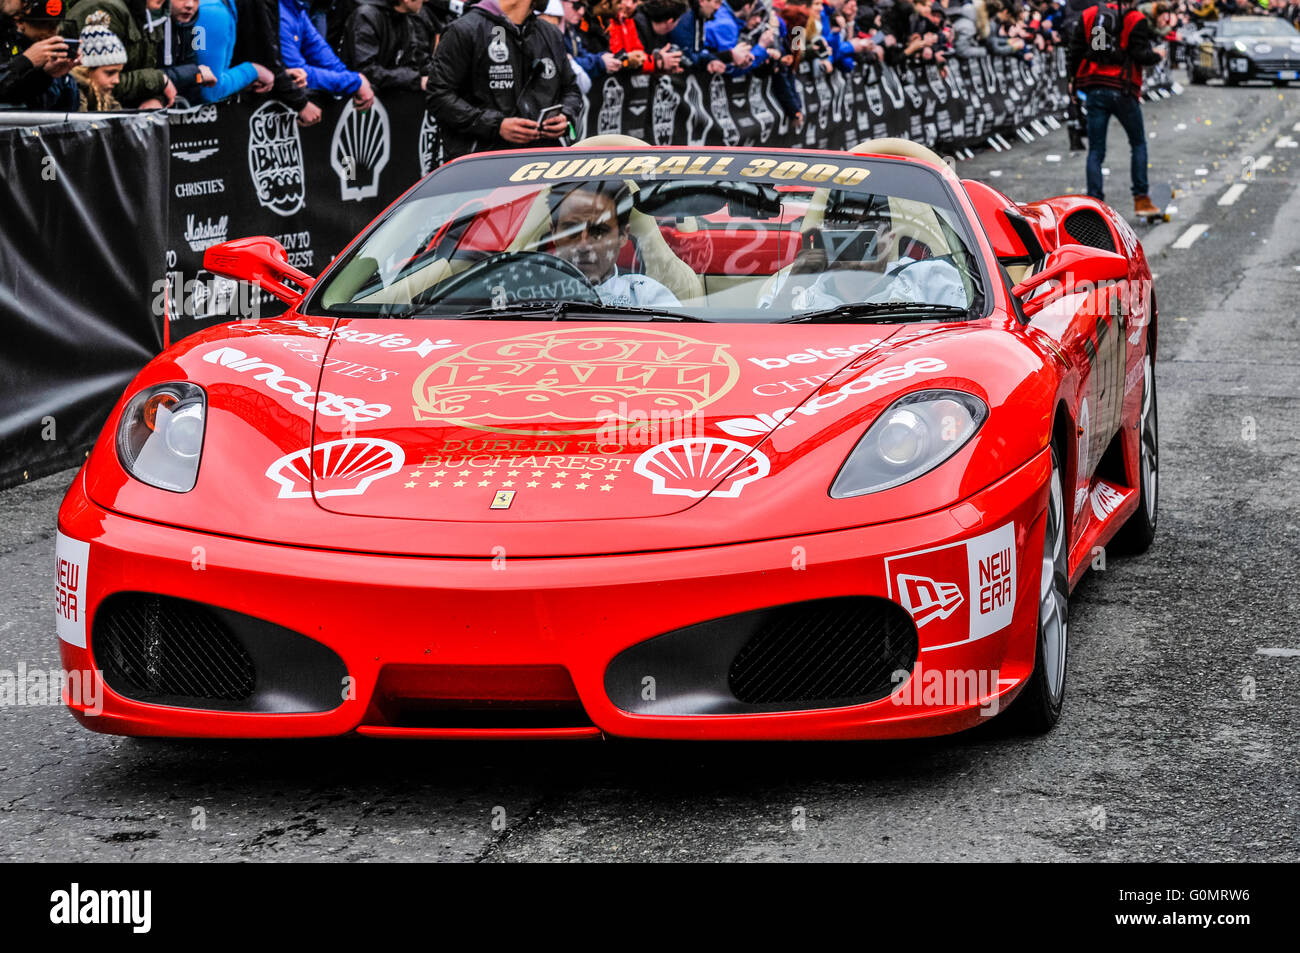 DUBLIN, IRELAND. MAY 01 2016 - A Ferrari F430 starts the 6 day drive to Bucharest from Dublin as it competes in - Stock Image